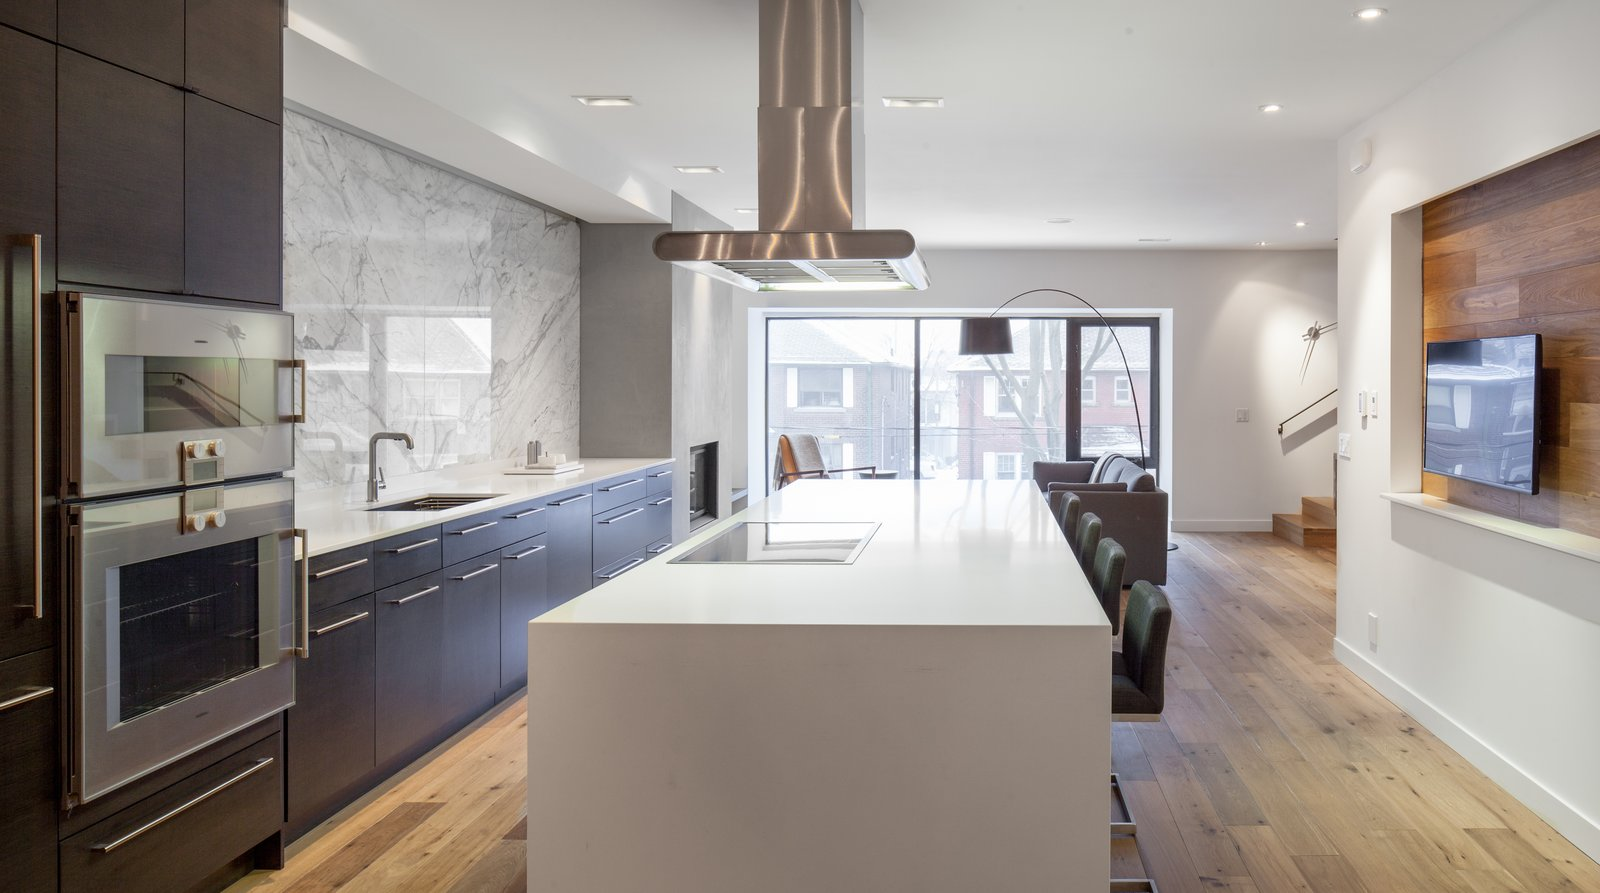 A spacious kitchen anchors the second floor. Its streamlined Cabico cabinetry and Gaggenau appliances direct the eye to the bay window and create an airy sensation. Quick meals can be eaten while perched atop the Cee stools at the Caeserstone countertop.  Photo 4 of 9 in A Spacious Toronto Triplex Responds to Rising Urban Density